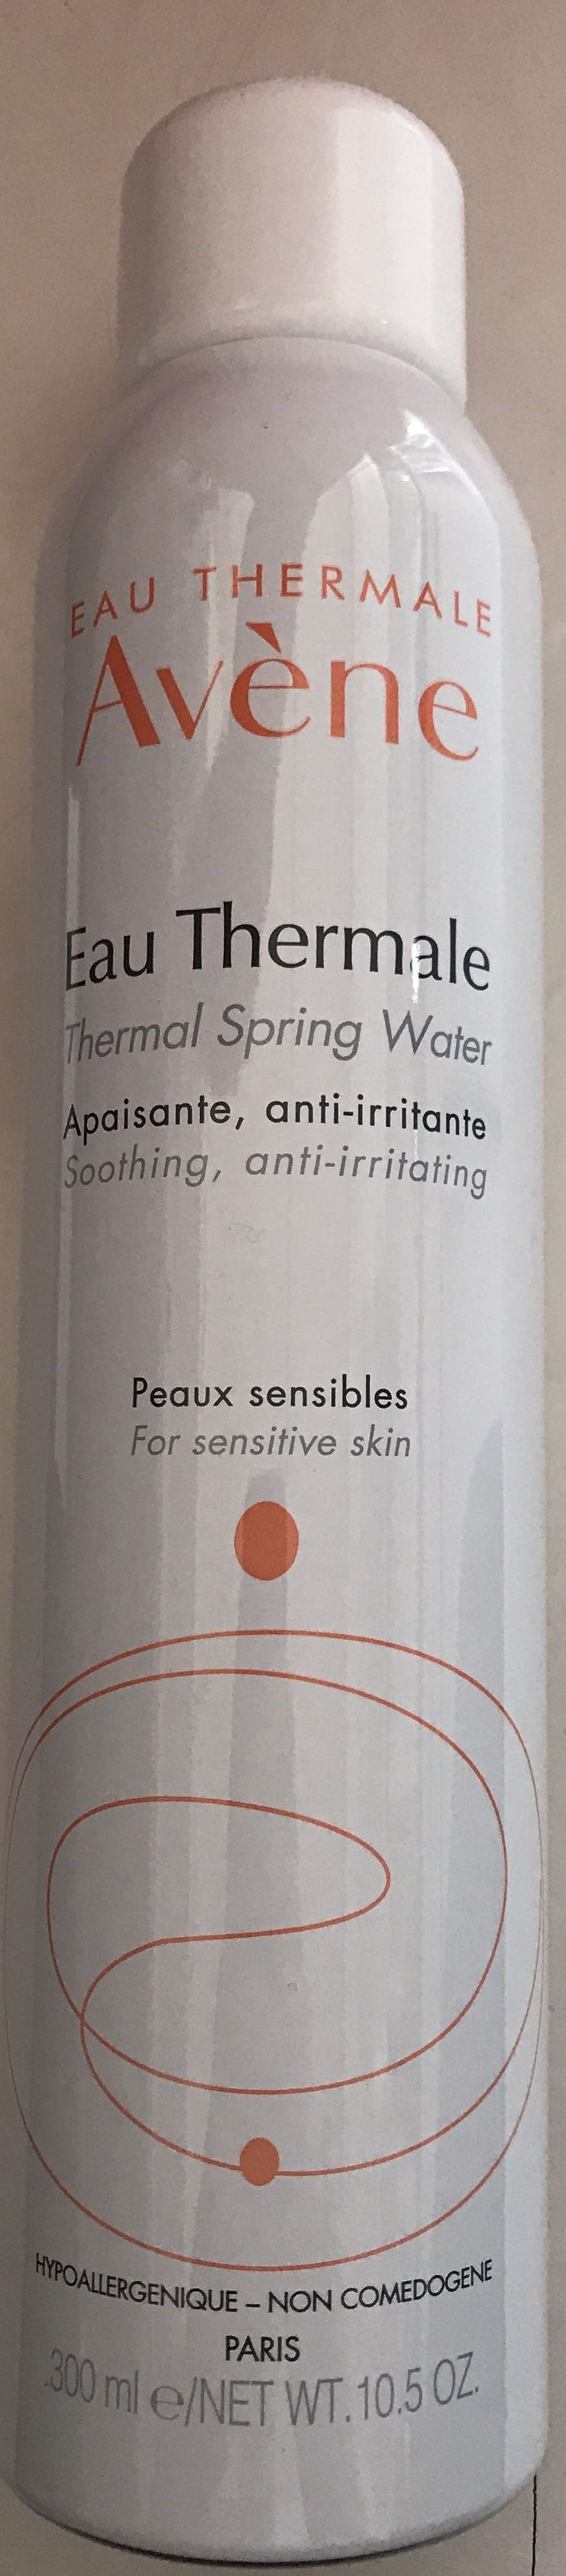 Eau thermale - Product